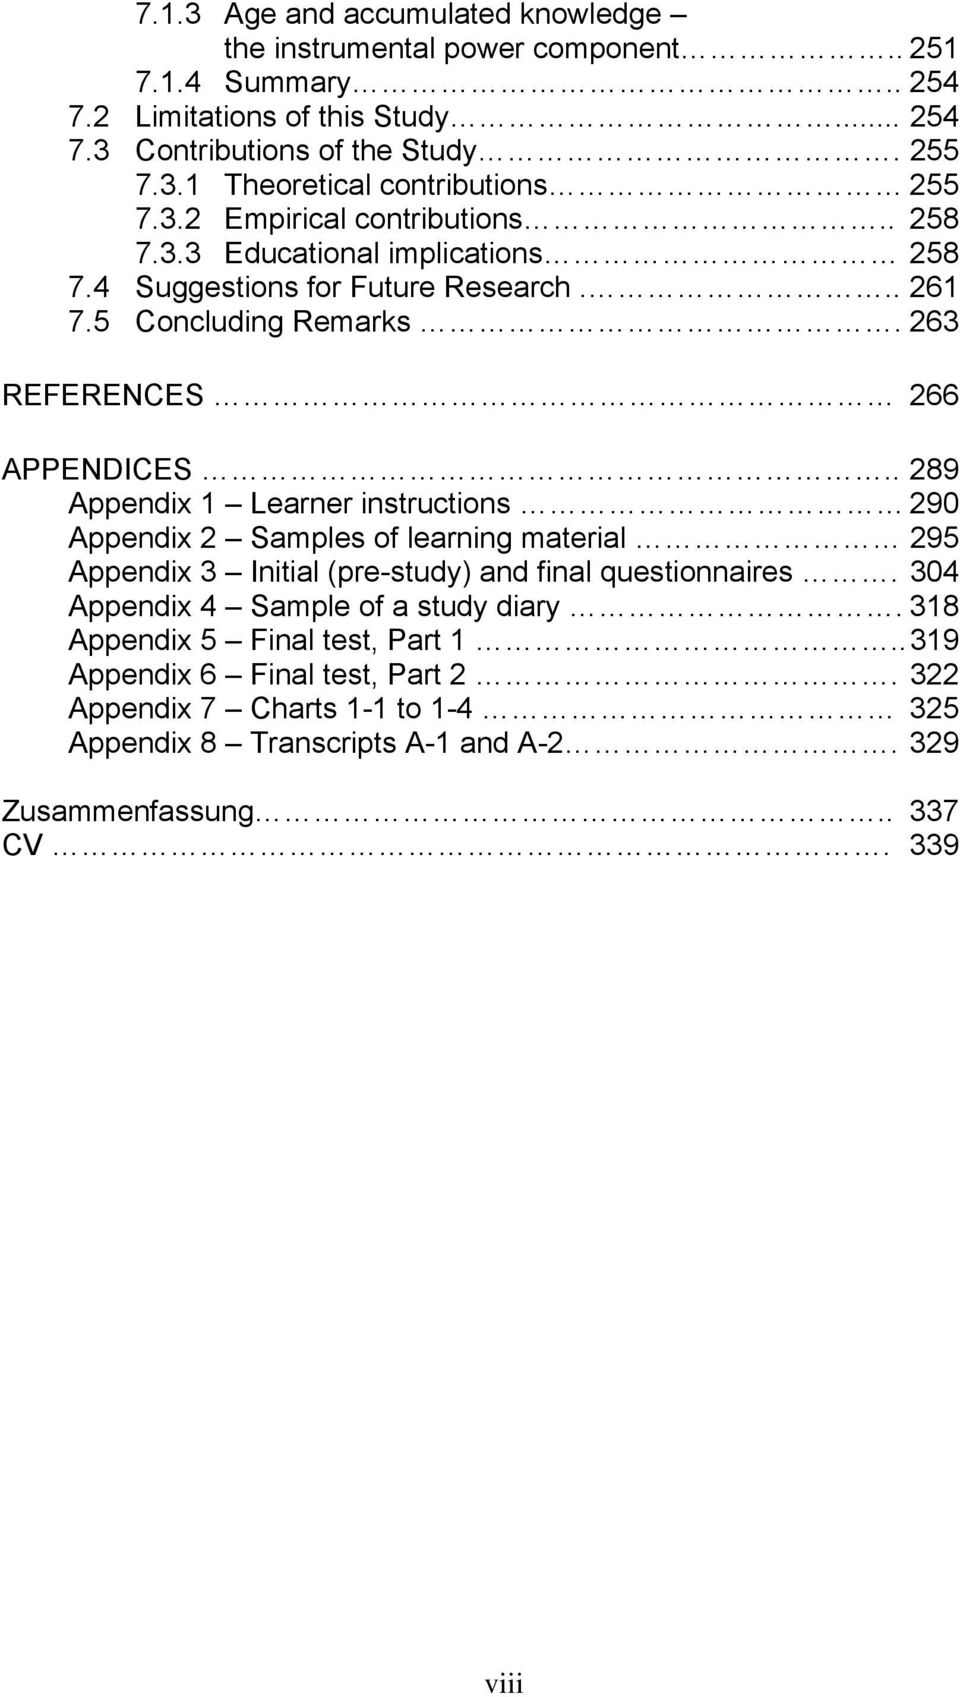 . 289 Appendix 1 Learner instructions 290 Appendix 2 Samples of learning material 295 Appendix 3 Initial (pre-study) and final questionnaires. 304 Appendix 4 Sample of a study diary.